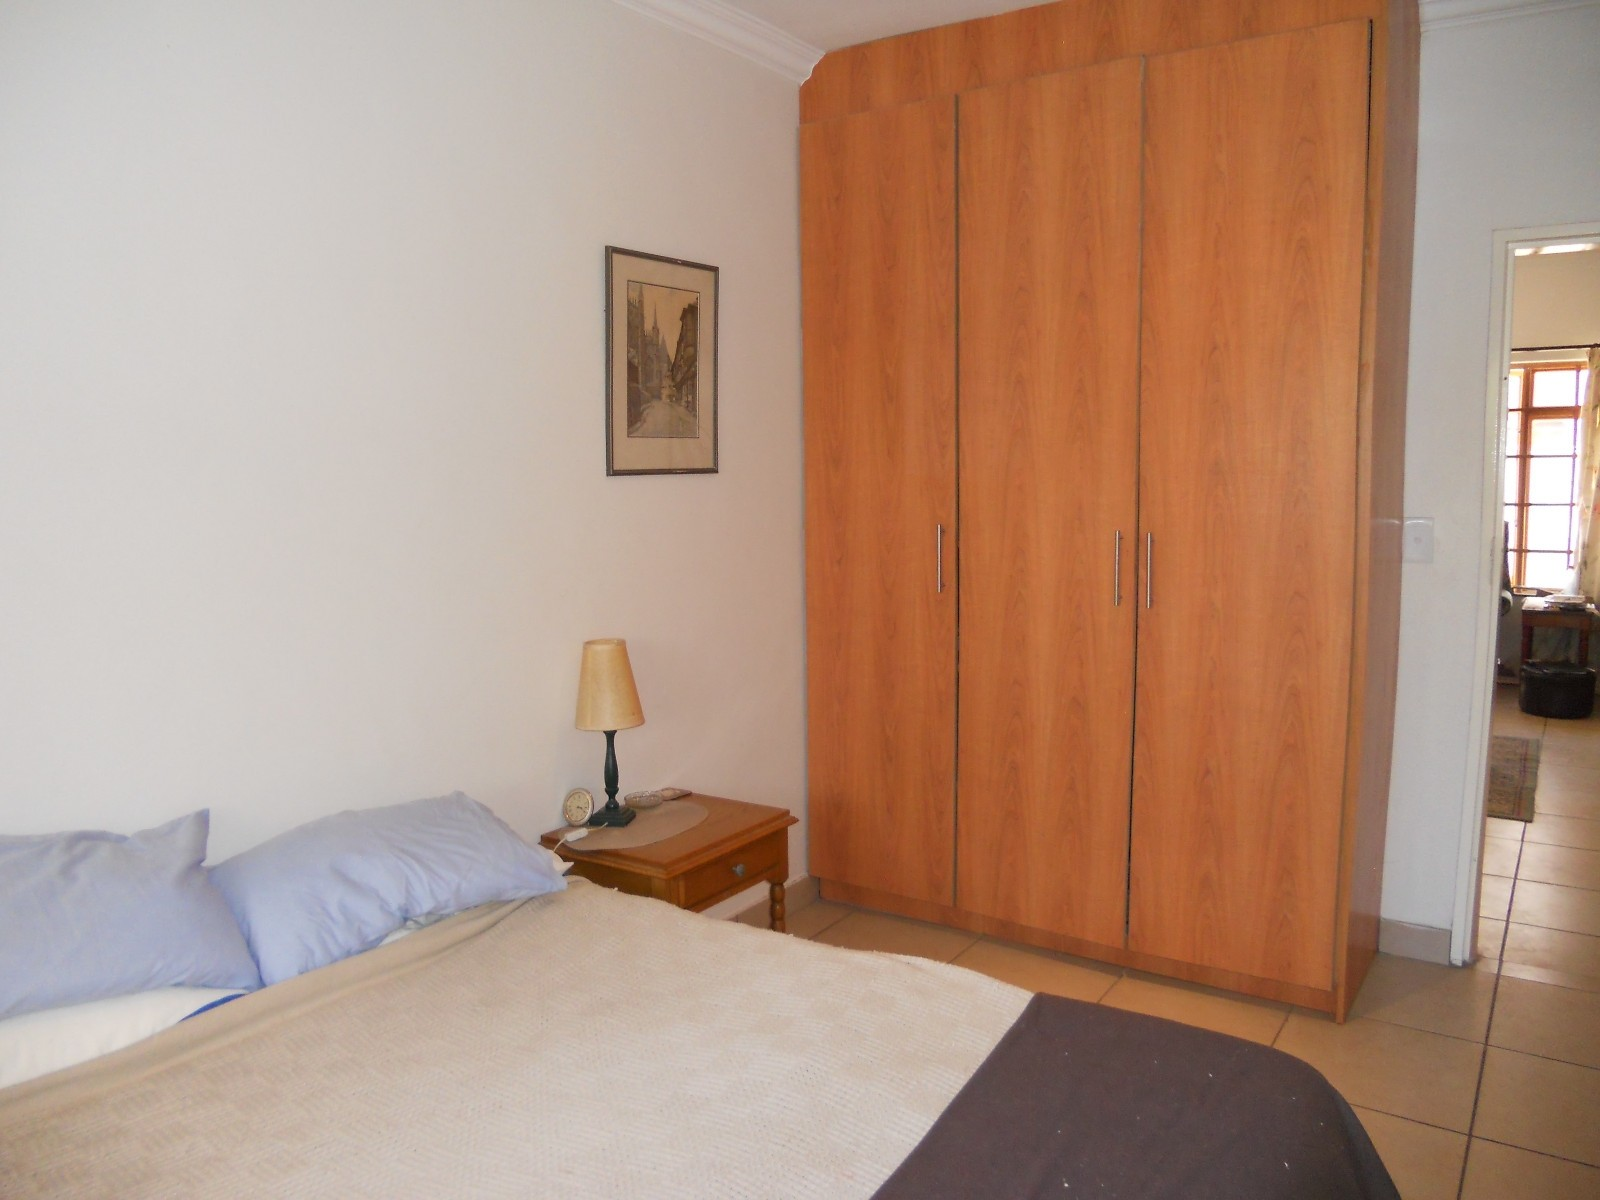 House in Bult - Bed And Cubboard